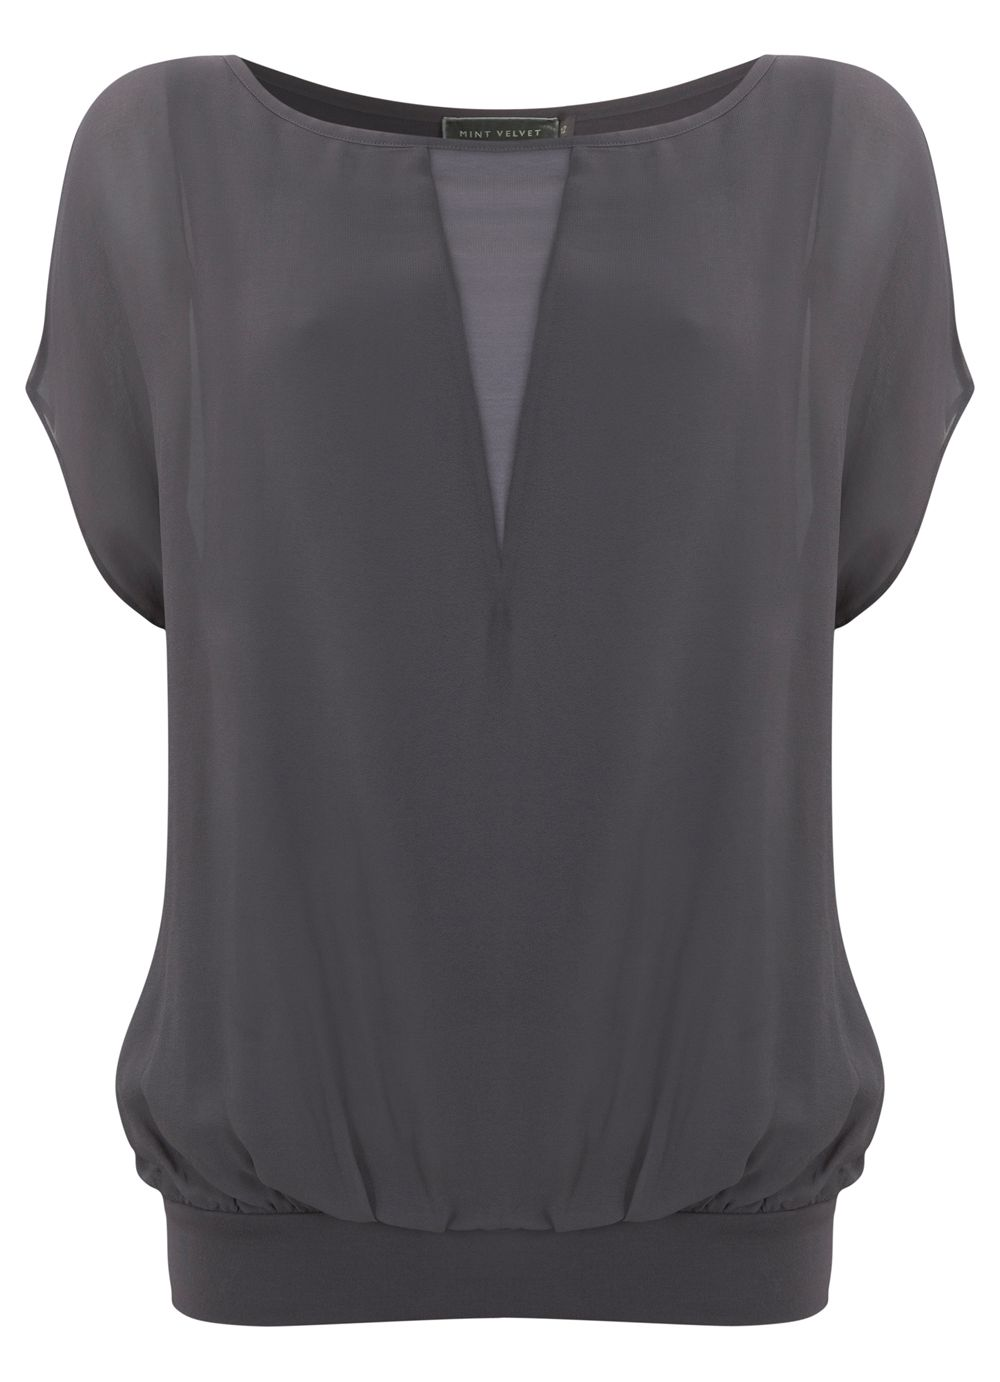 Slate sheer blouson top